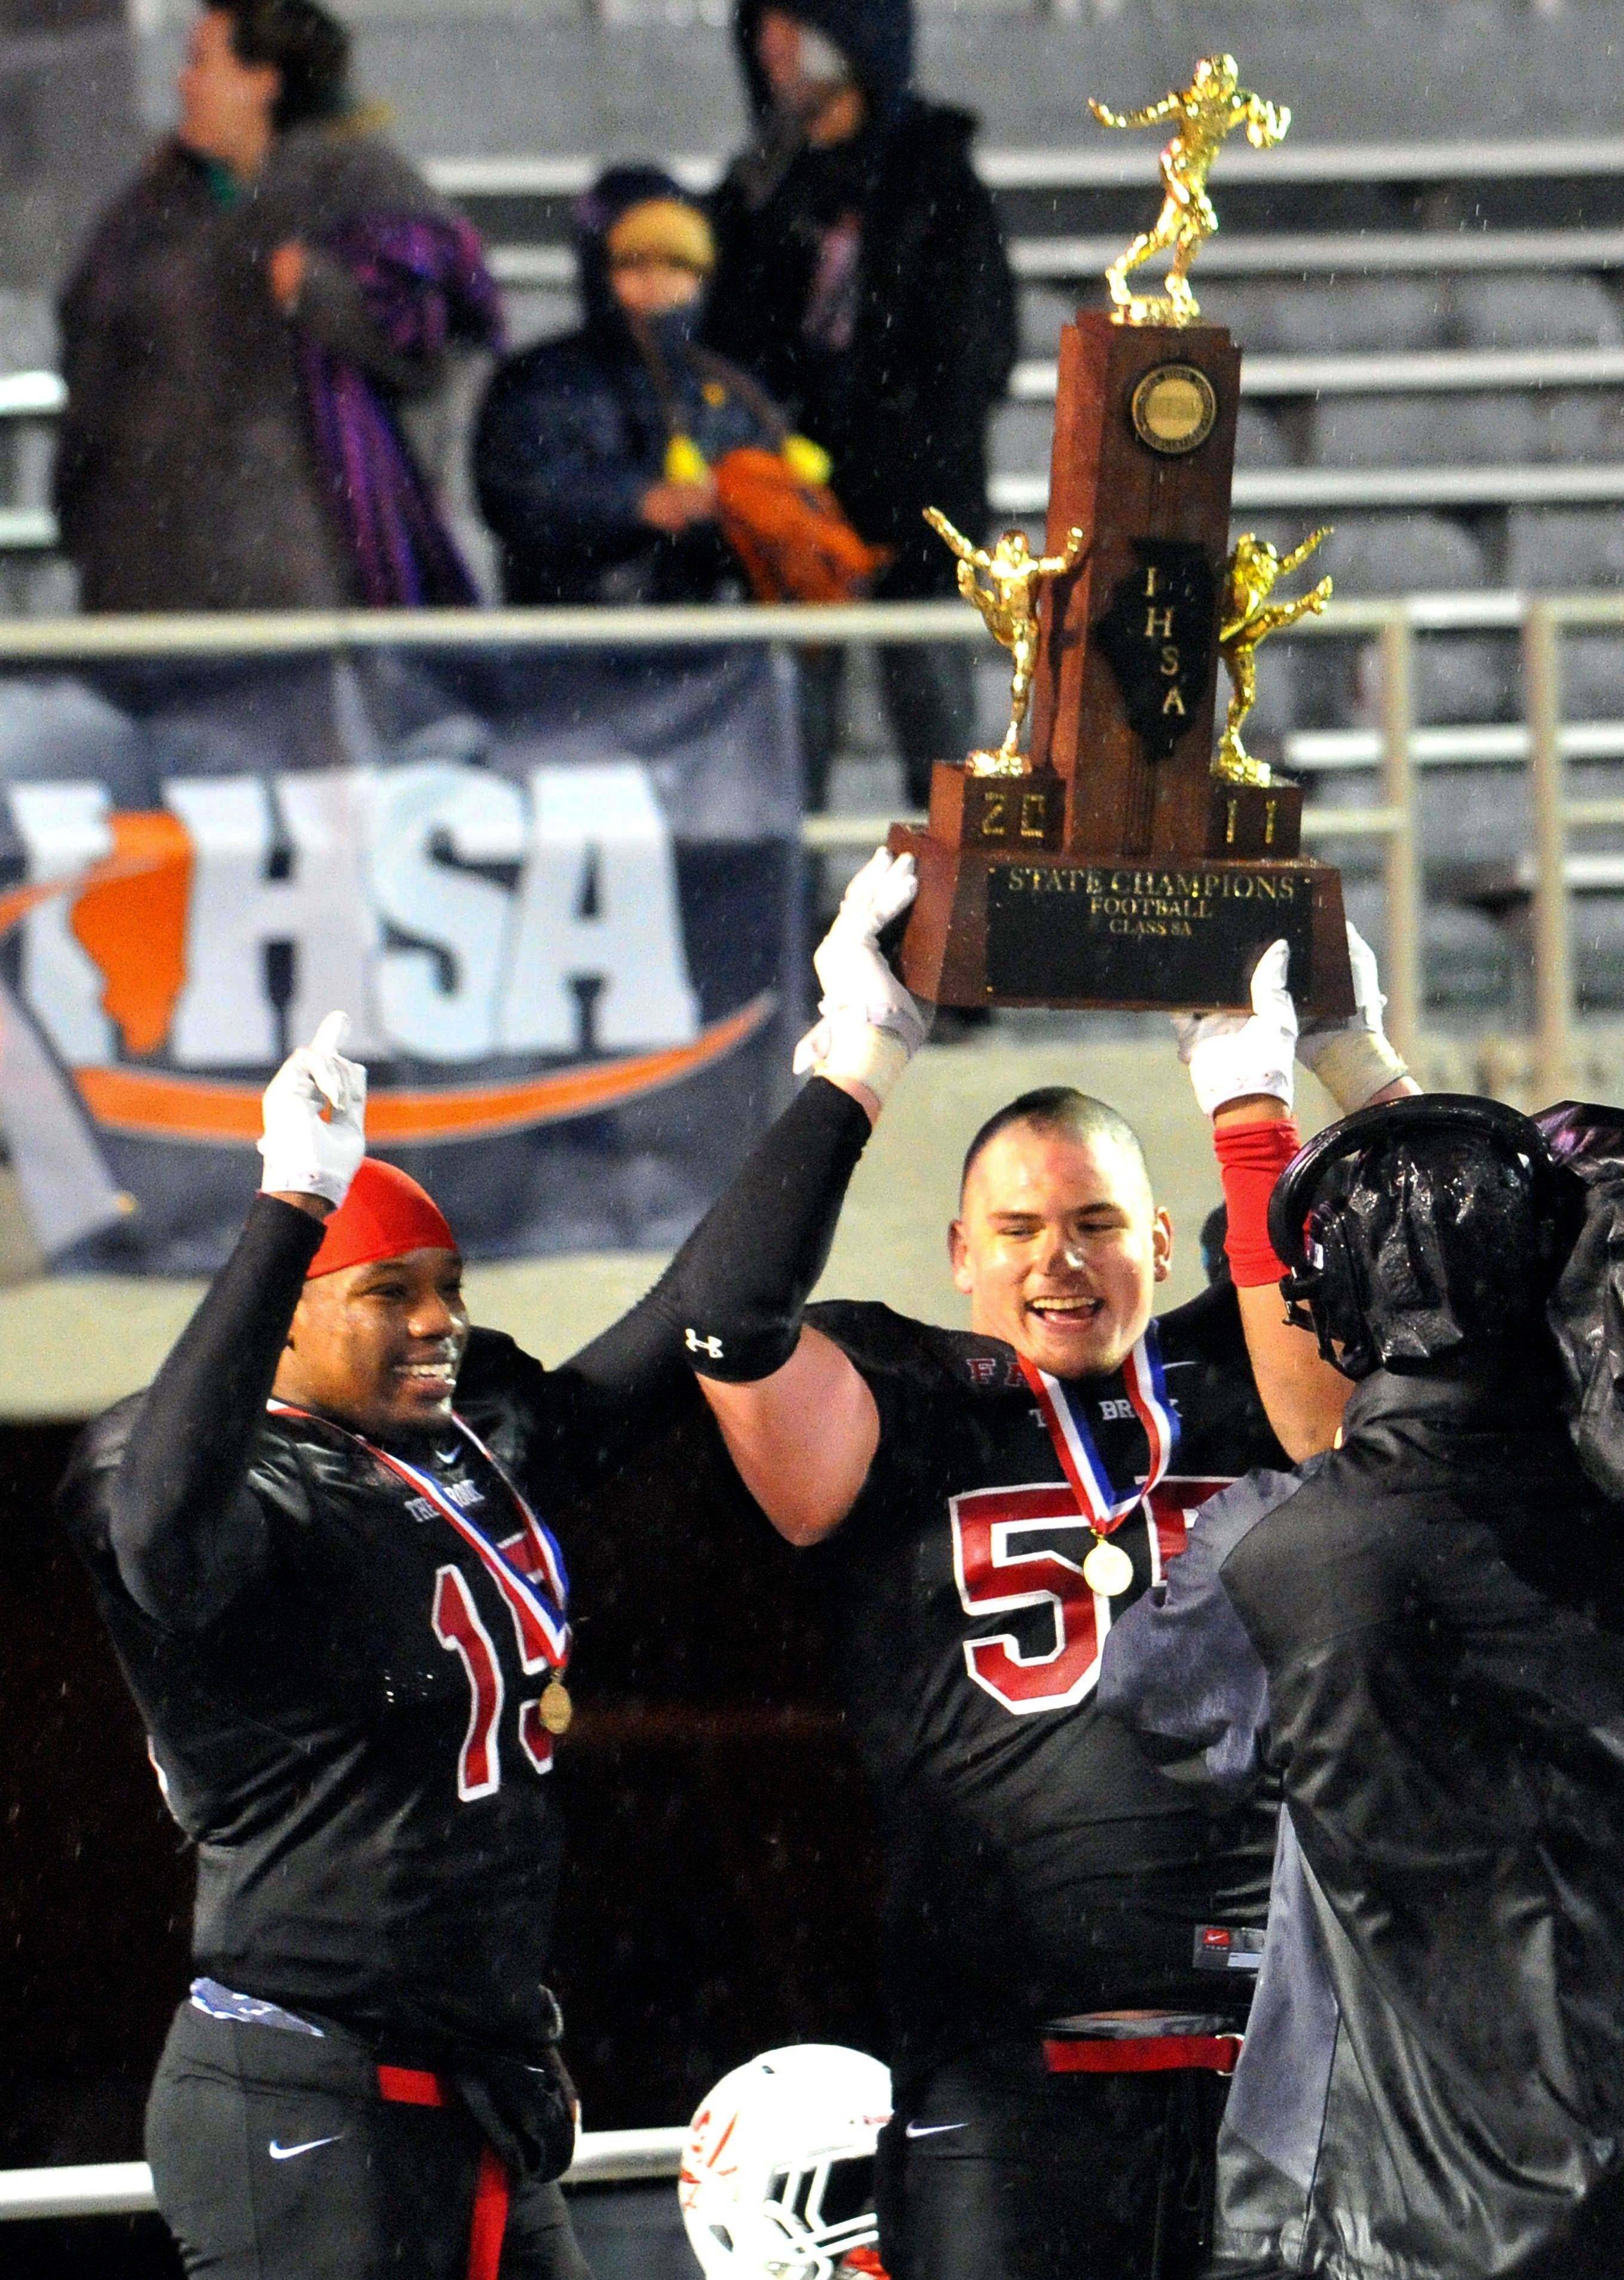 Bolingbrook's Aaron Bailey (15) and Robert Bain (55) accept the championship trophy after beating Loyola Academy 21-17 in the Class 8A state championship football game Saturday in Champaign.